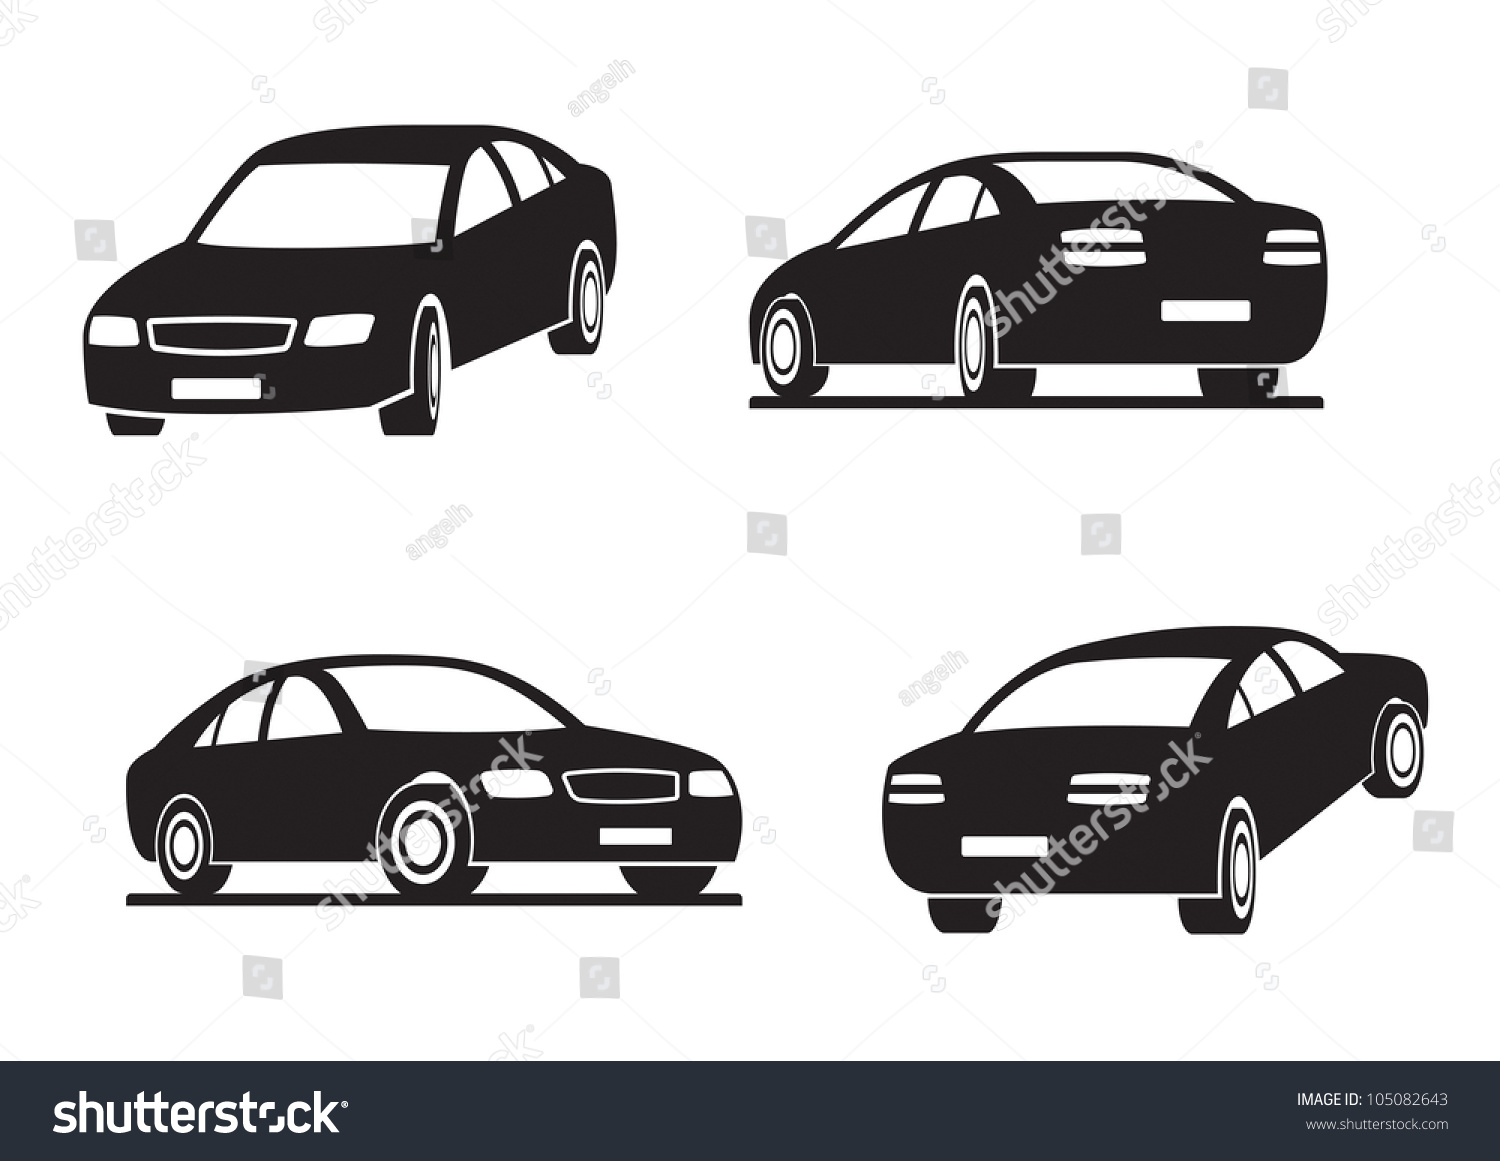 Cars Perspective Vector Illustration Stock Vector (Royalty Free ...